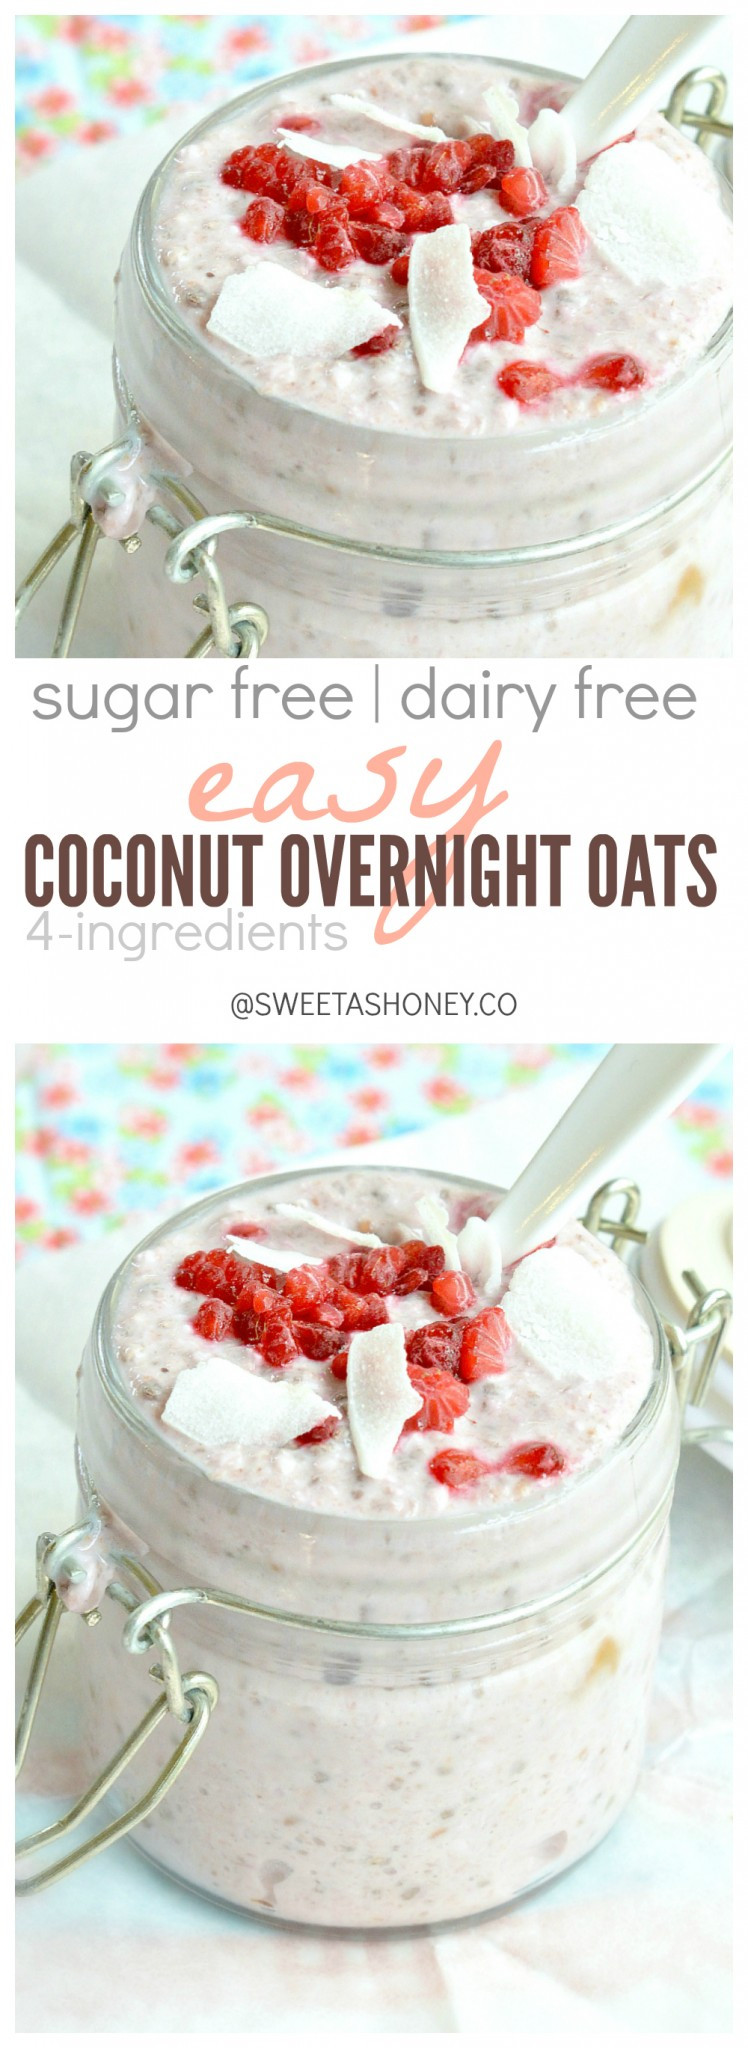 Dairy Free Overnight Oats  Overnight Oats Recipe Dairy free breakfast Sweetashoney